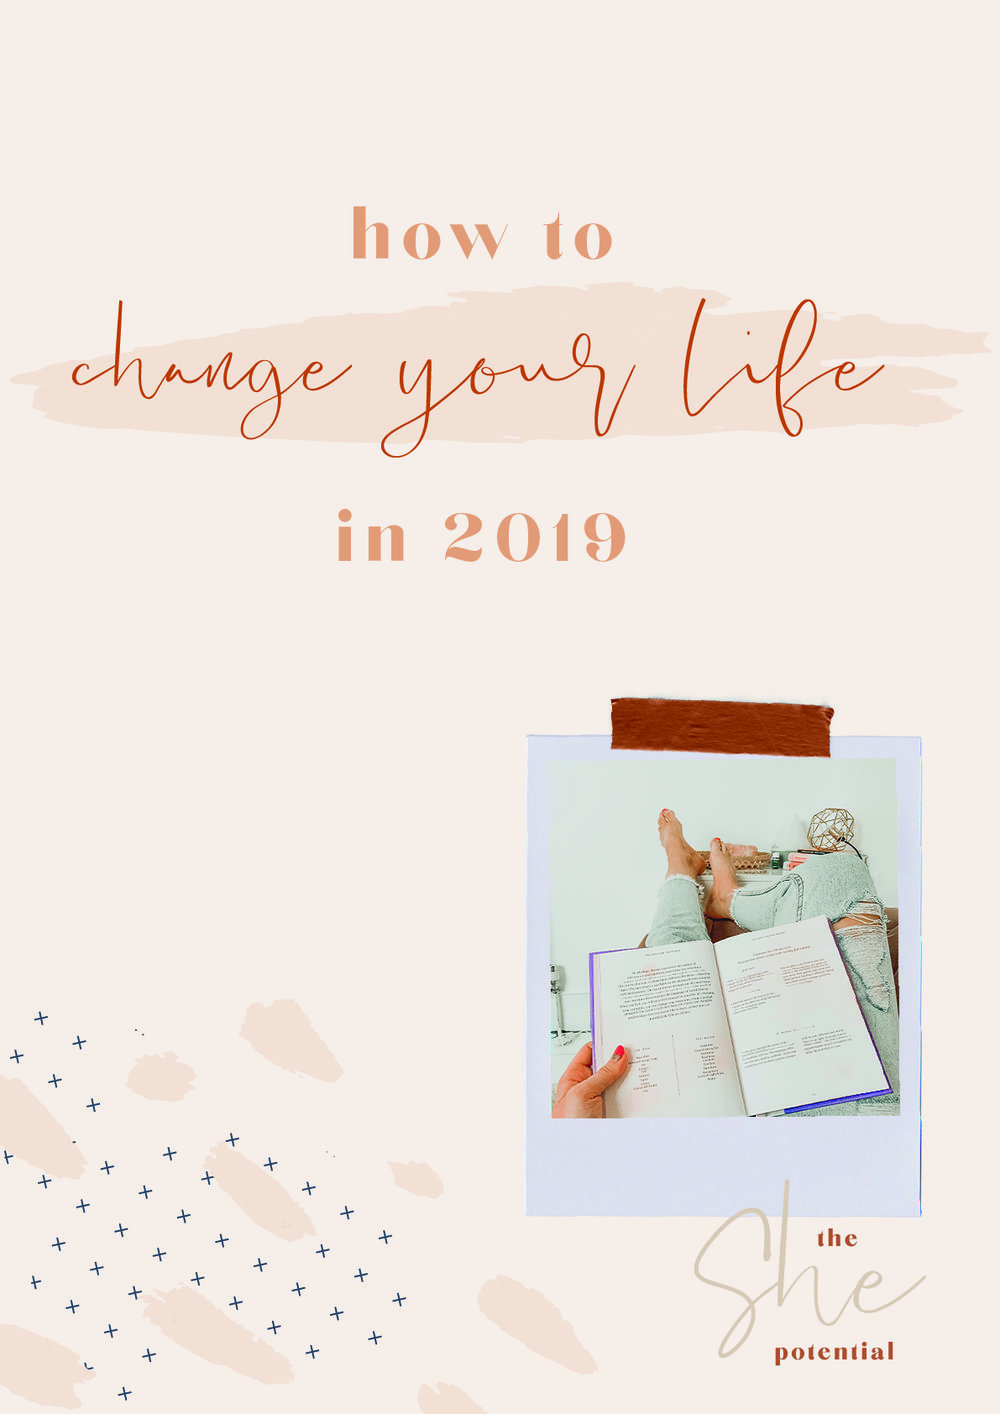 How to Change Your Life in 2019 with holistic, mindful practice